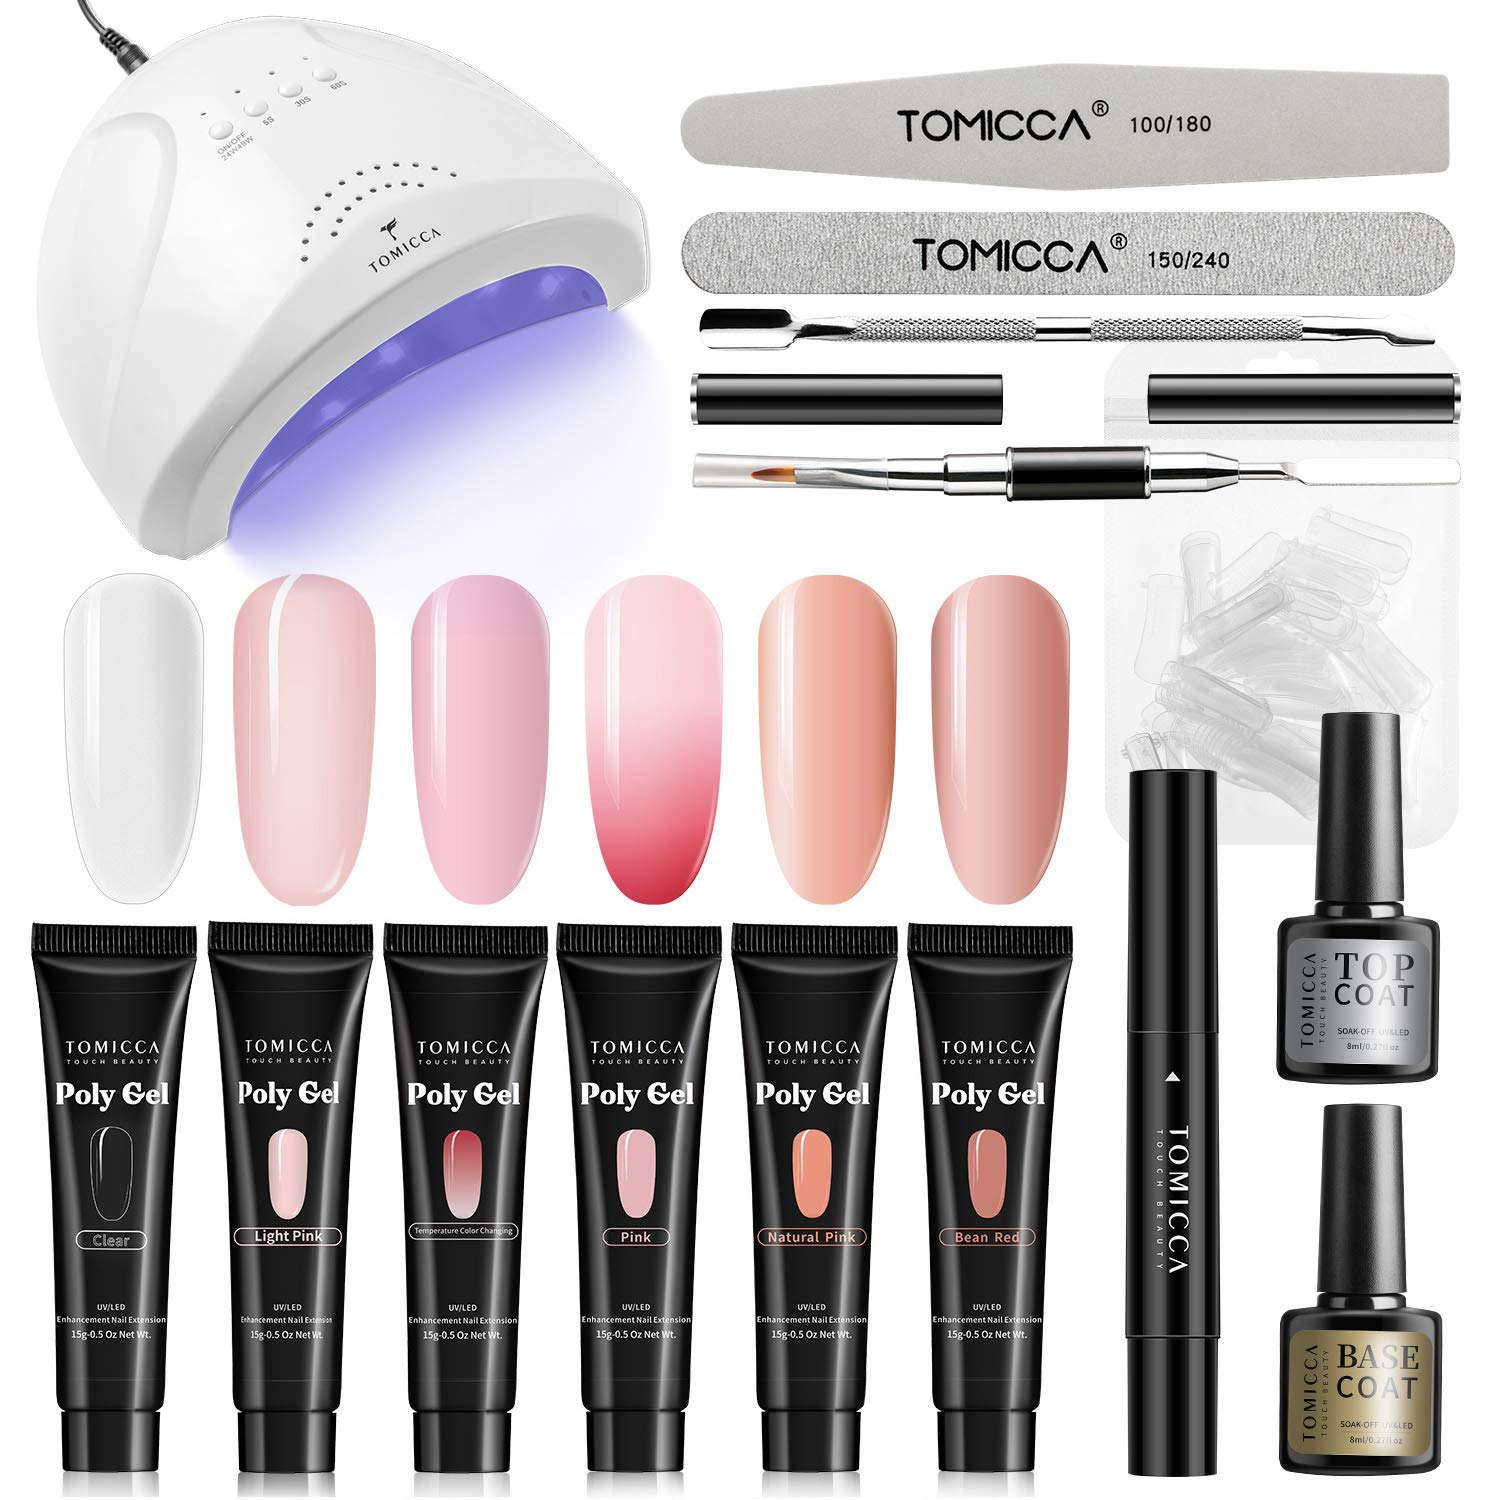 TOMICCA Polygel Nail Kit with LED Lamp, 6 Colors Builder Gel, 24/48W UV/LED Nail Lamp, with Base & Top Coat, Slip Solution, Acrylic Nail Extension Set for Starter & Professional, French Manicure Kit